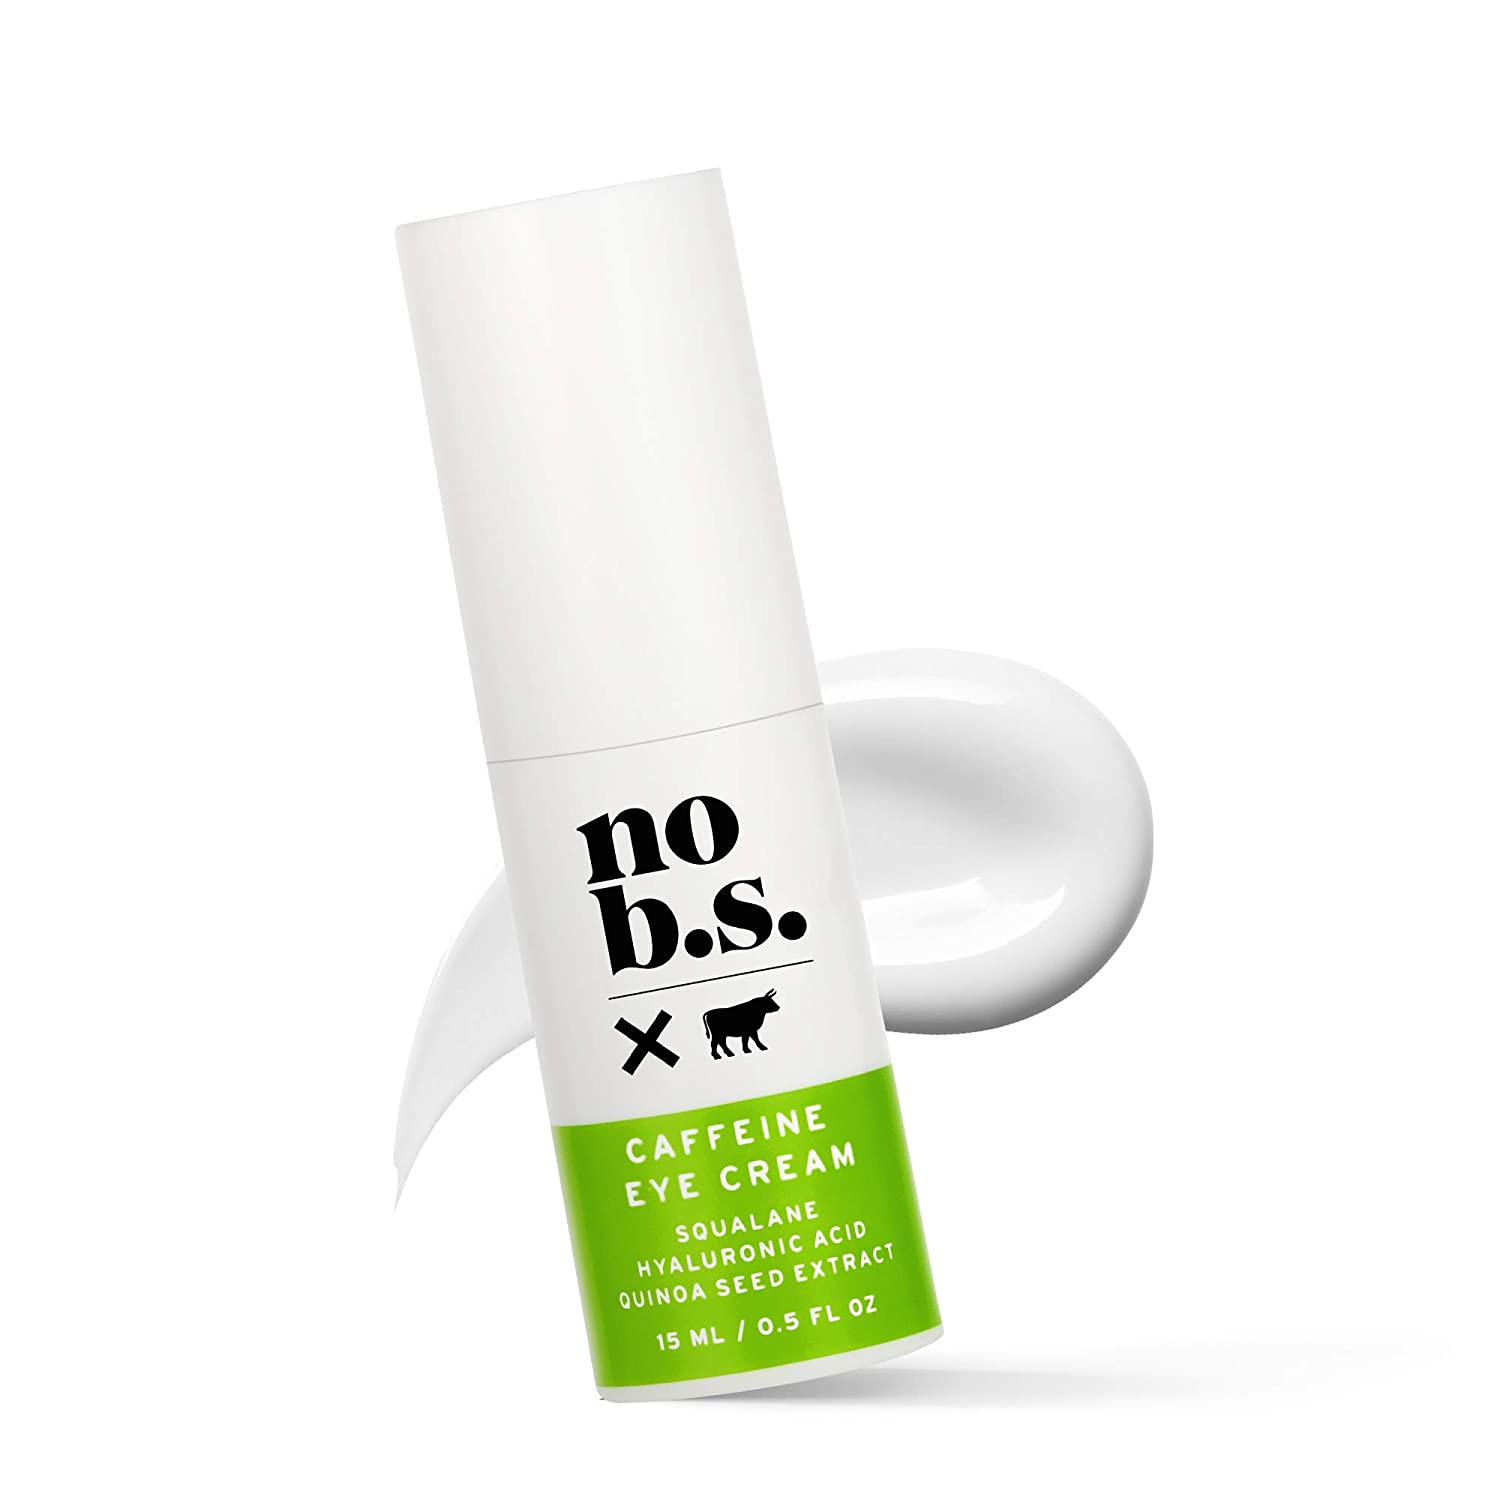 No B.S. Caffeine Eye Cream